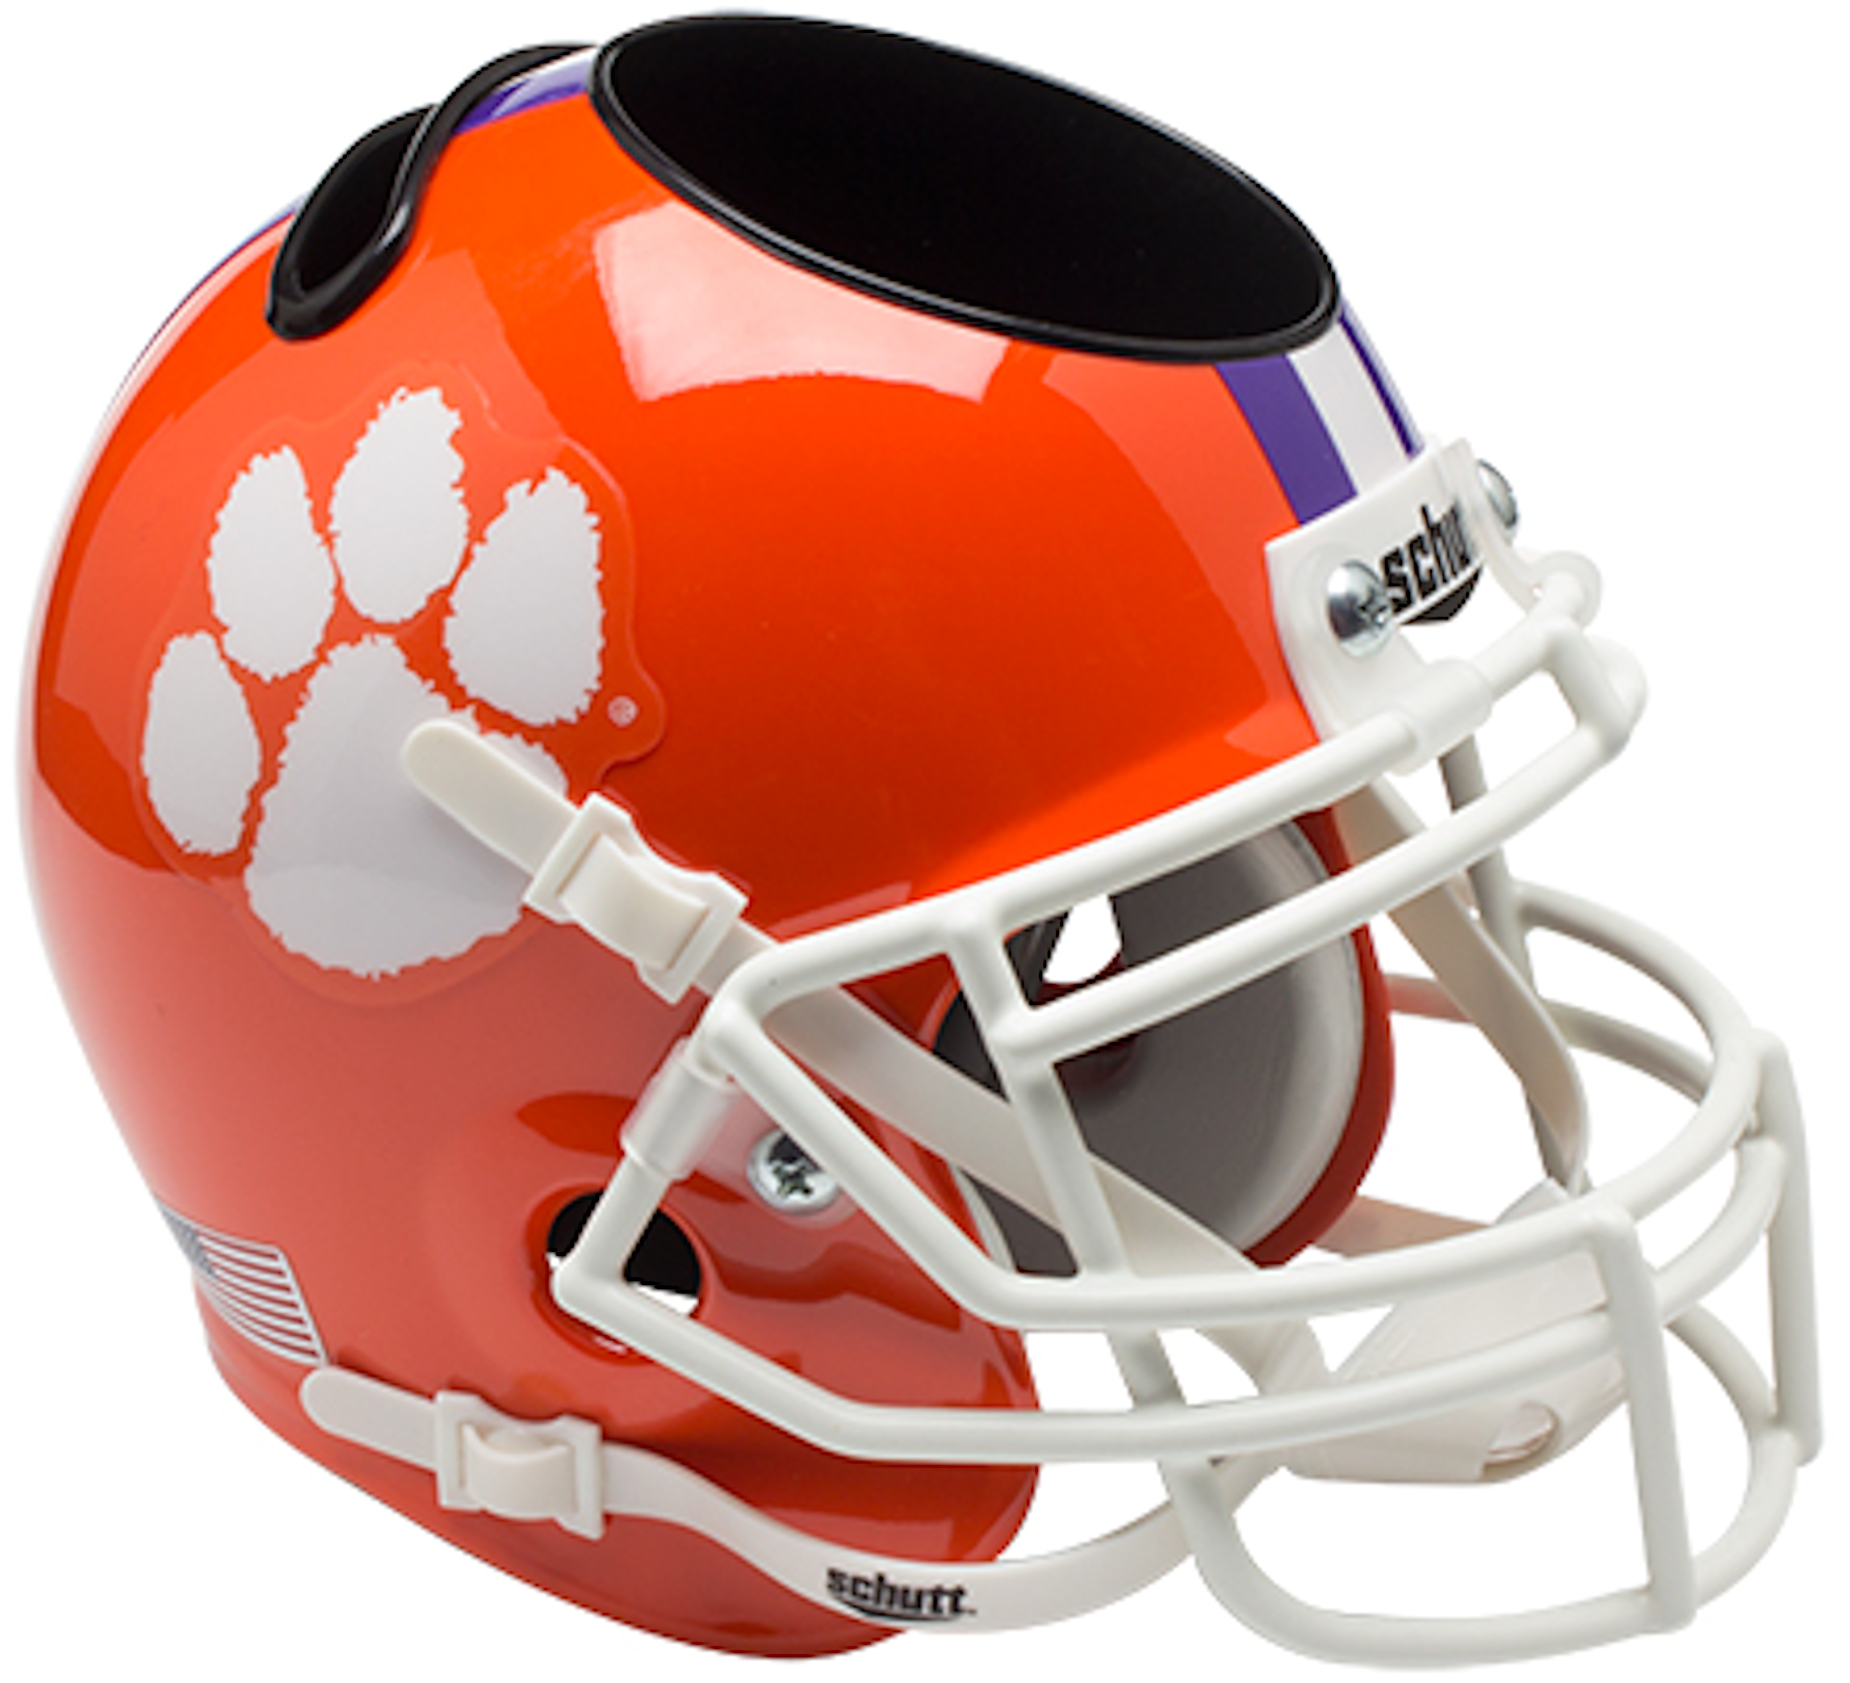 Clemson Tigers Miniature Football Helmet Desk Caddy